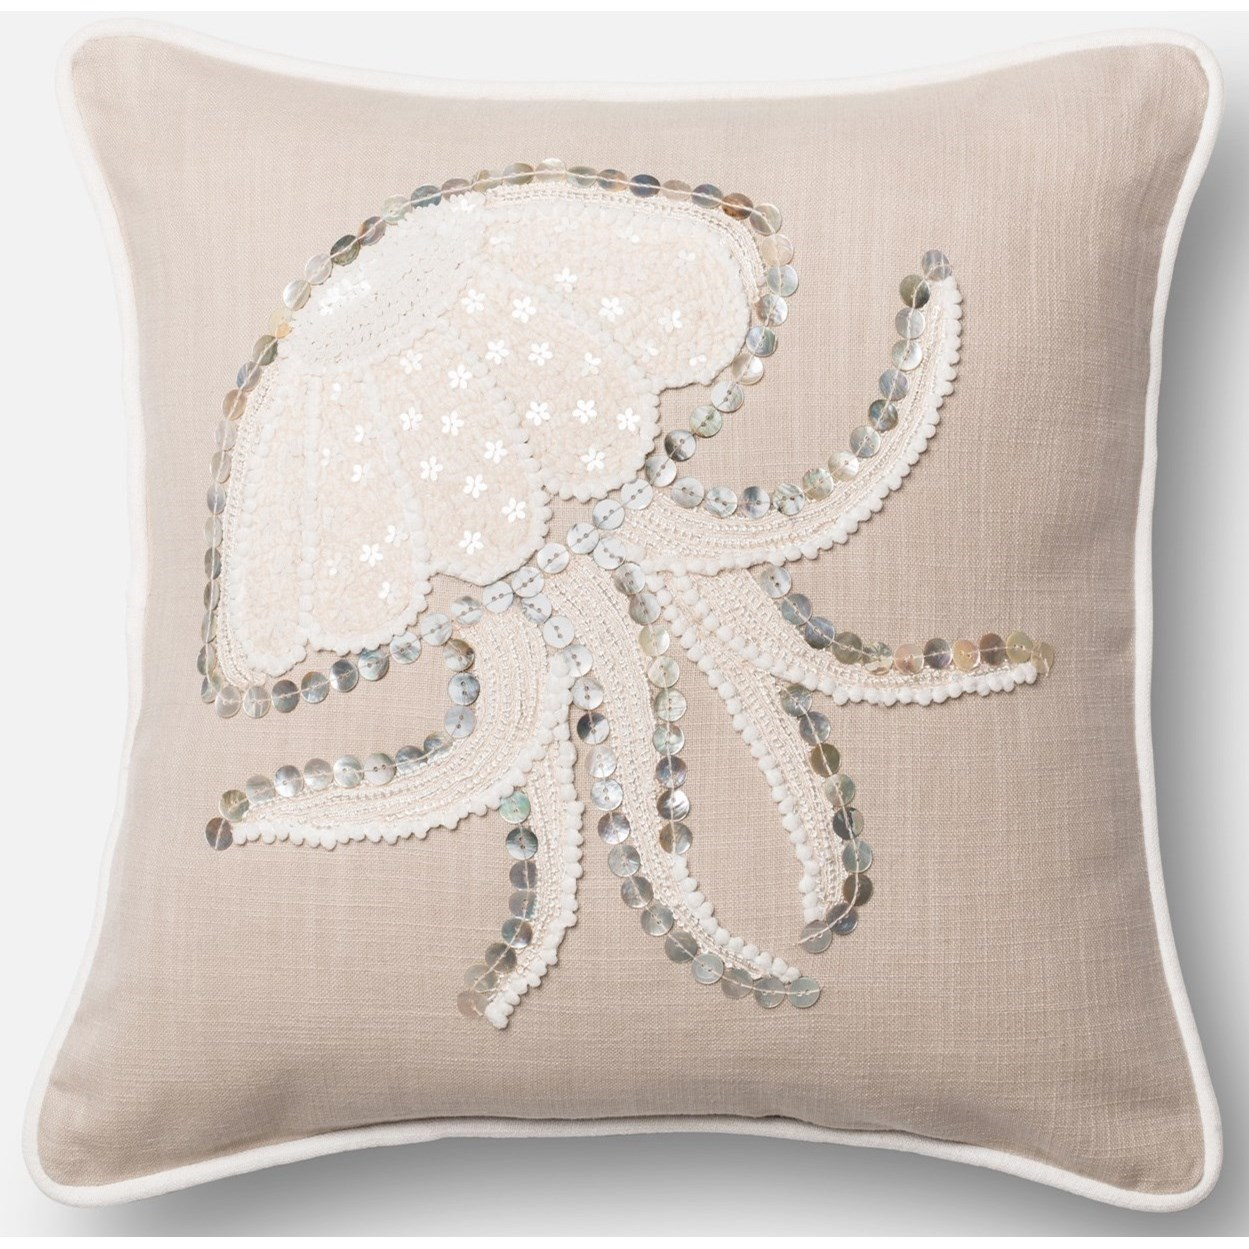 "Beaded 18"" X 18"" Down Pillow by Loloi Rugs at Virginia Furniture Market"